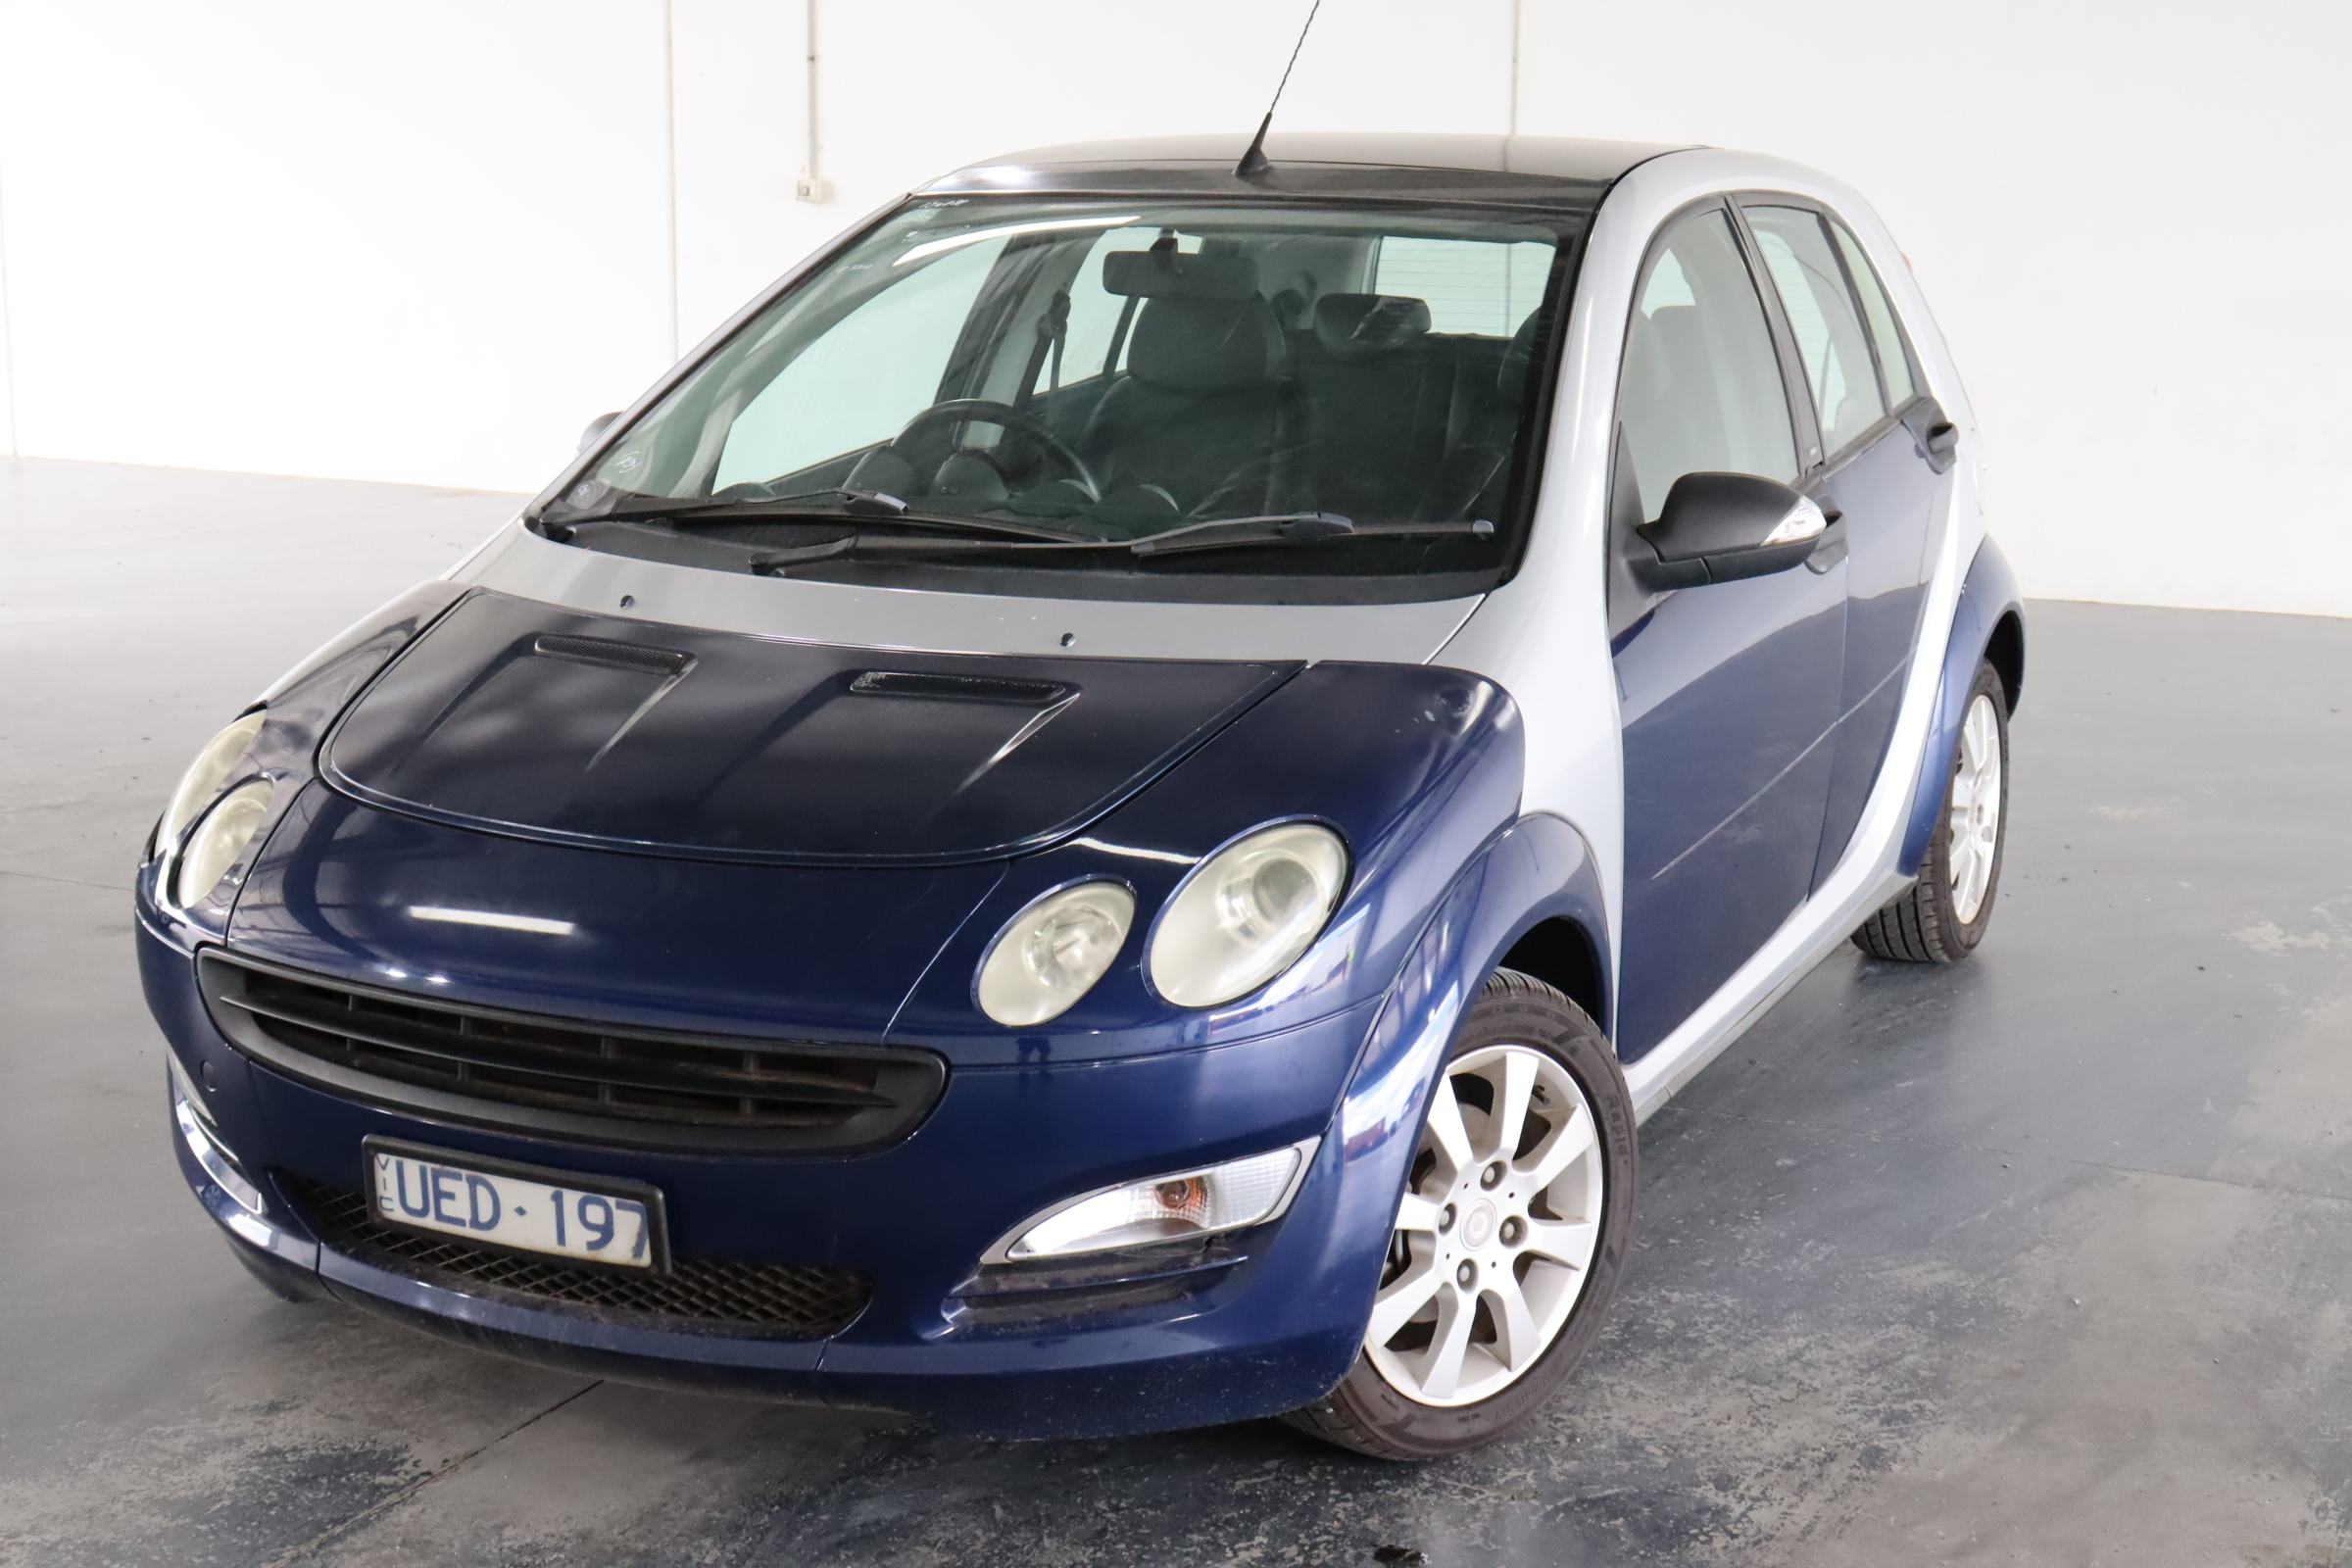 2005 Smart Forfour Pulse W454 Manual Hatchback